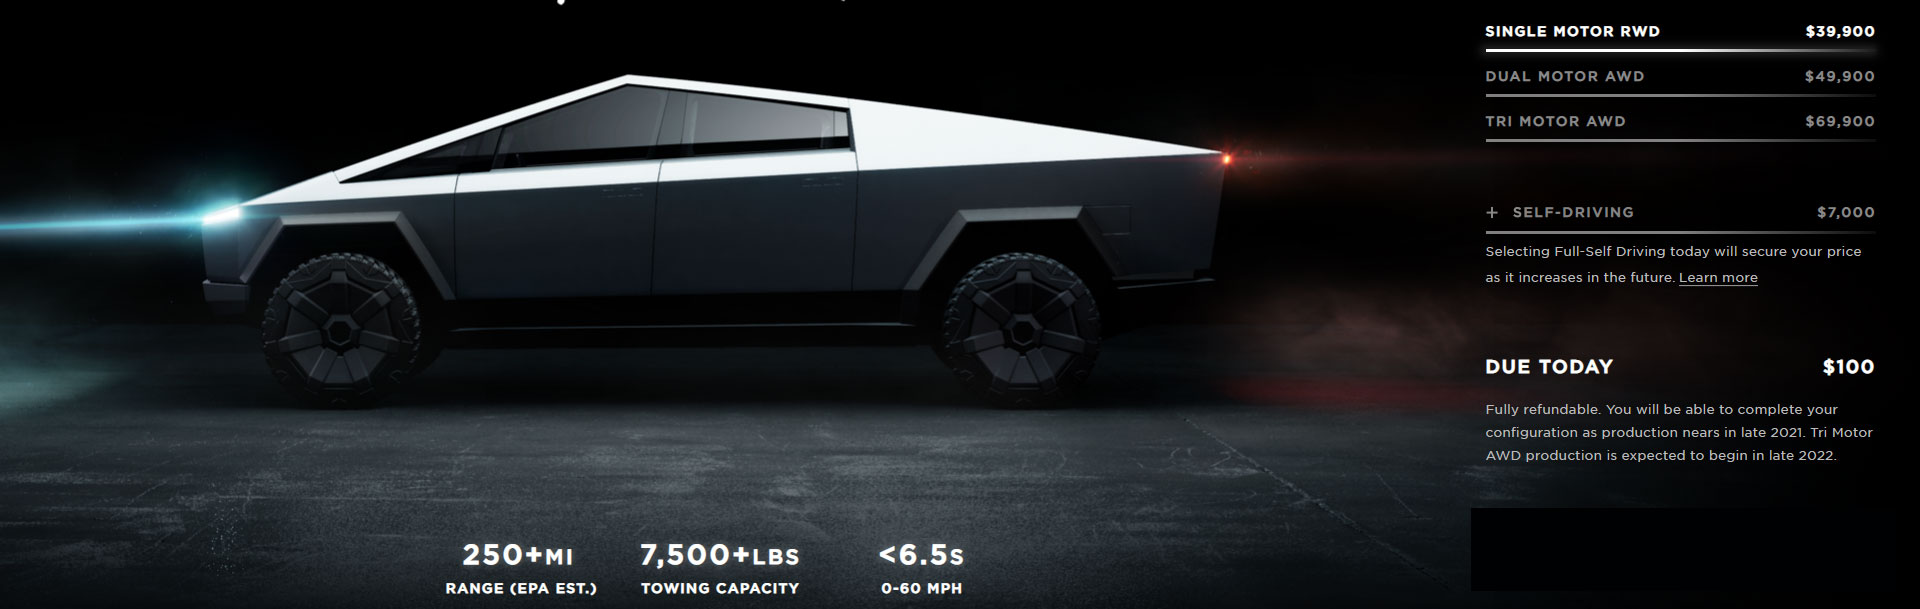 Tesla Cybertruck Pricing, Variants, Range and Towing Capacity.